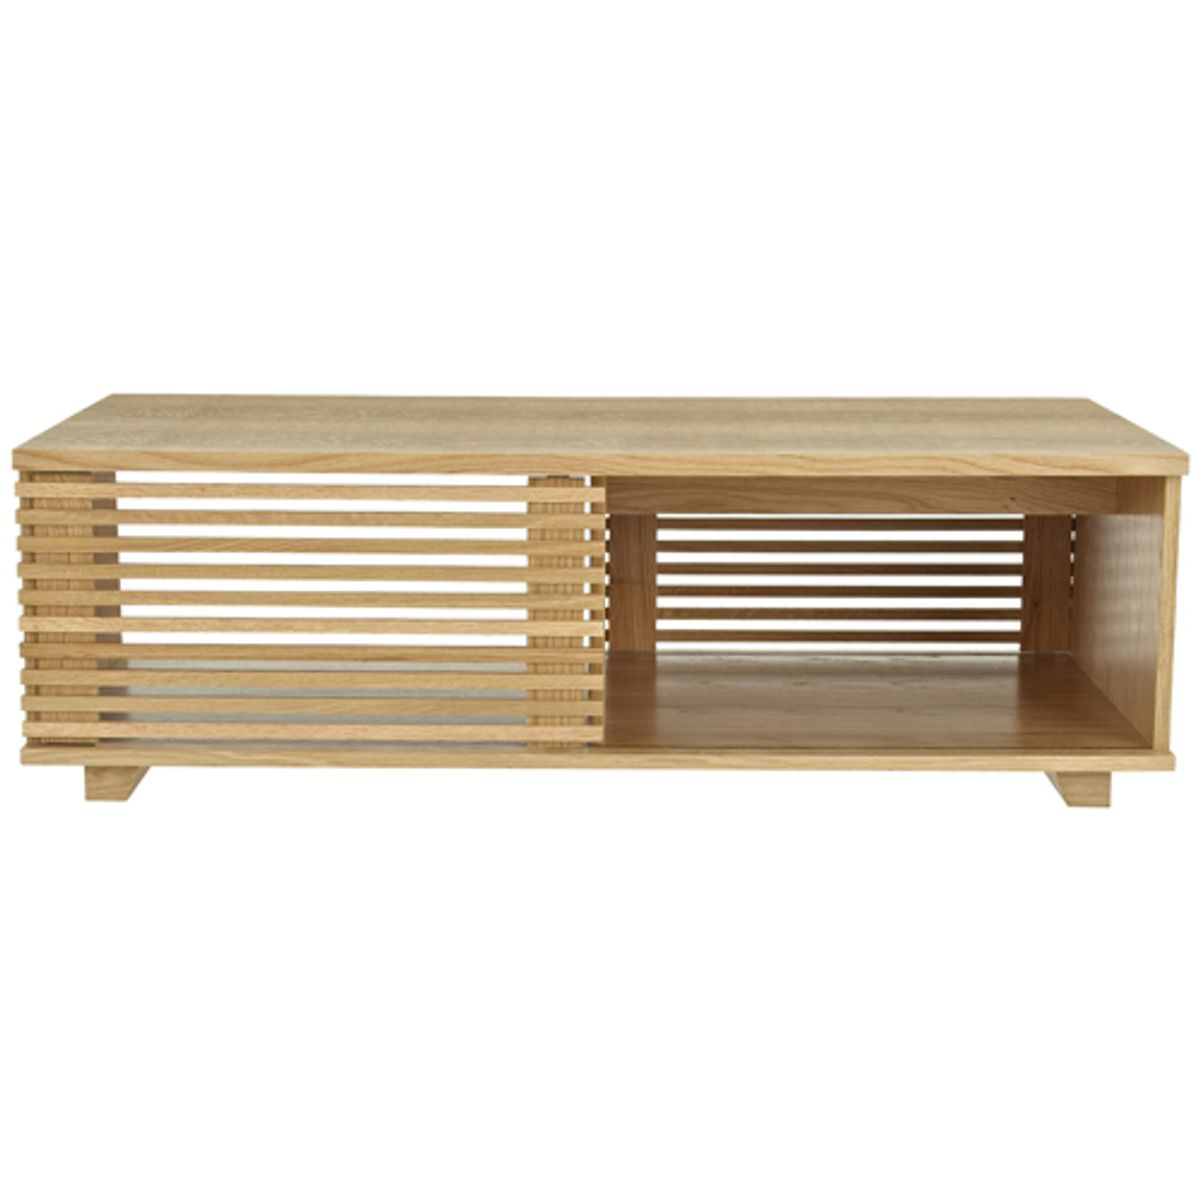 Table basse en ch ne porte persienne coulissante putney for Table basse coulissante